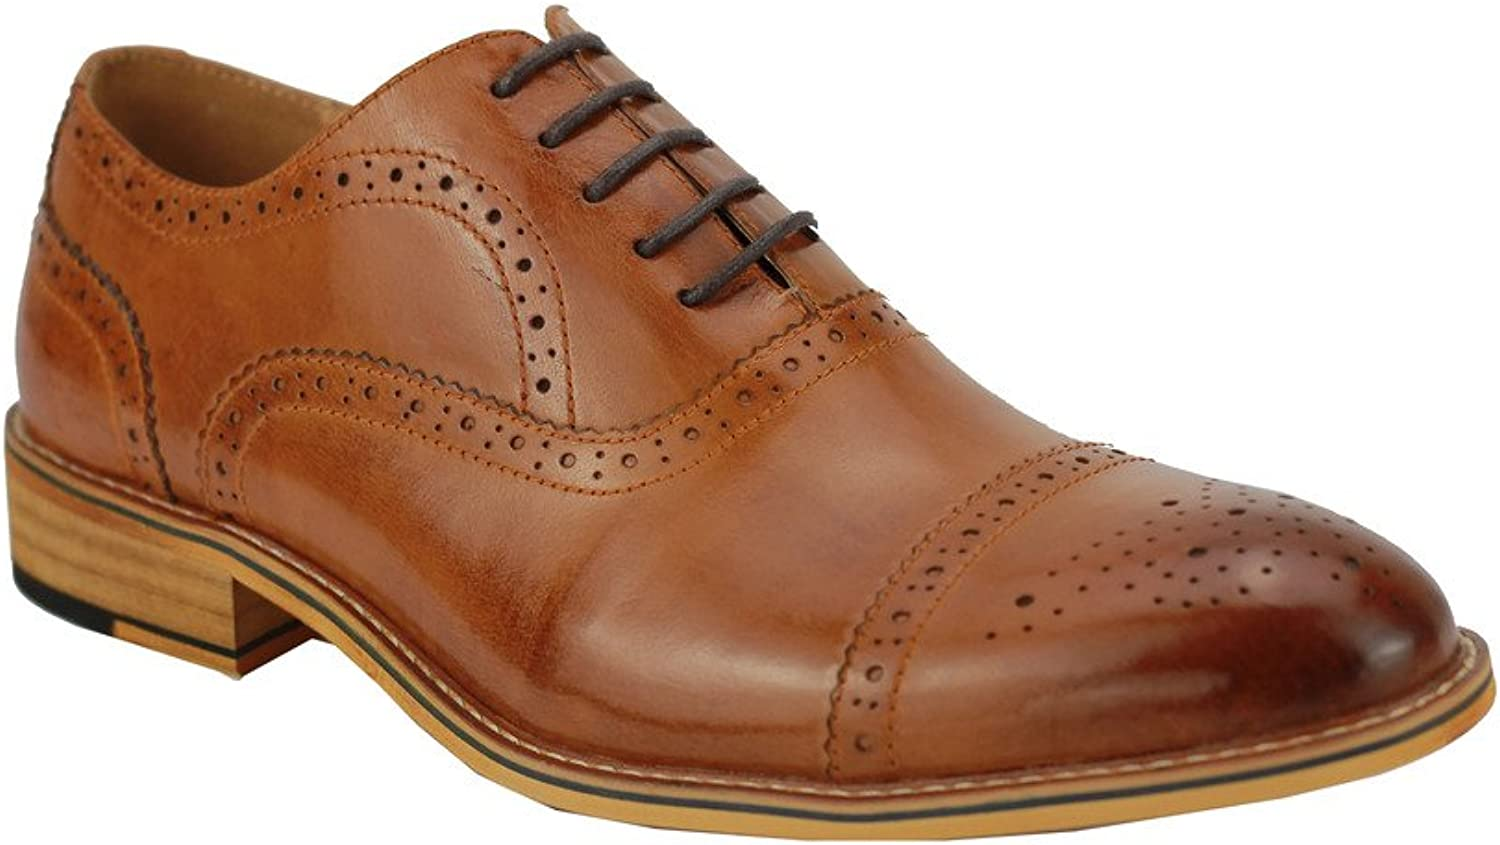 Xposed Mens Real Leather Black Tan Classic Oxford Lace up Smart shoes Brogue Punch Hole